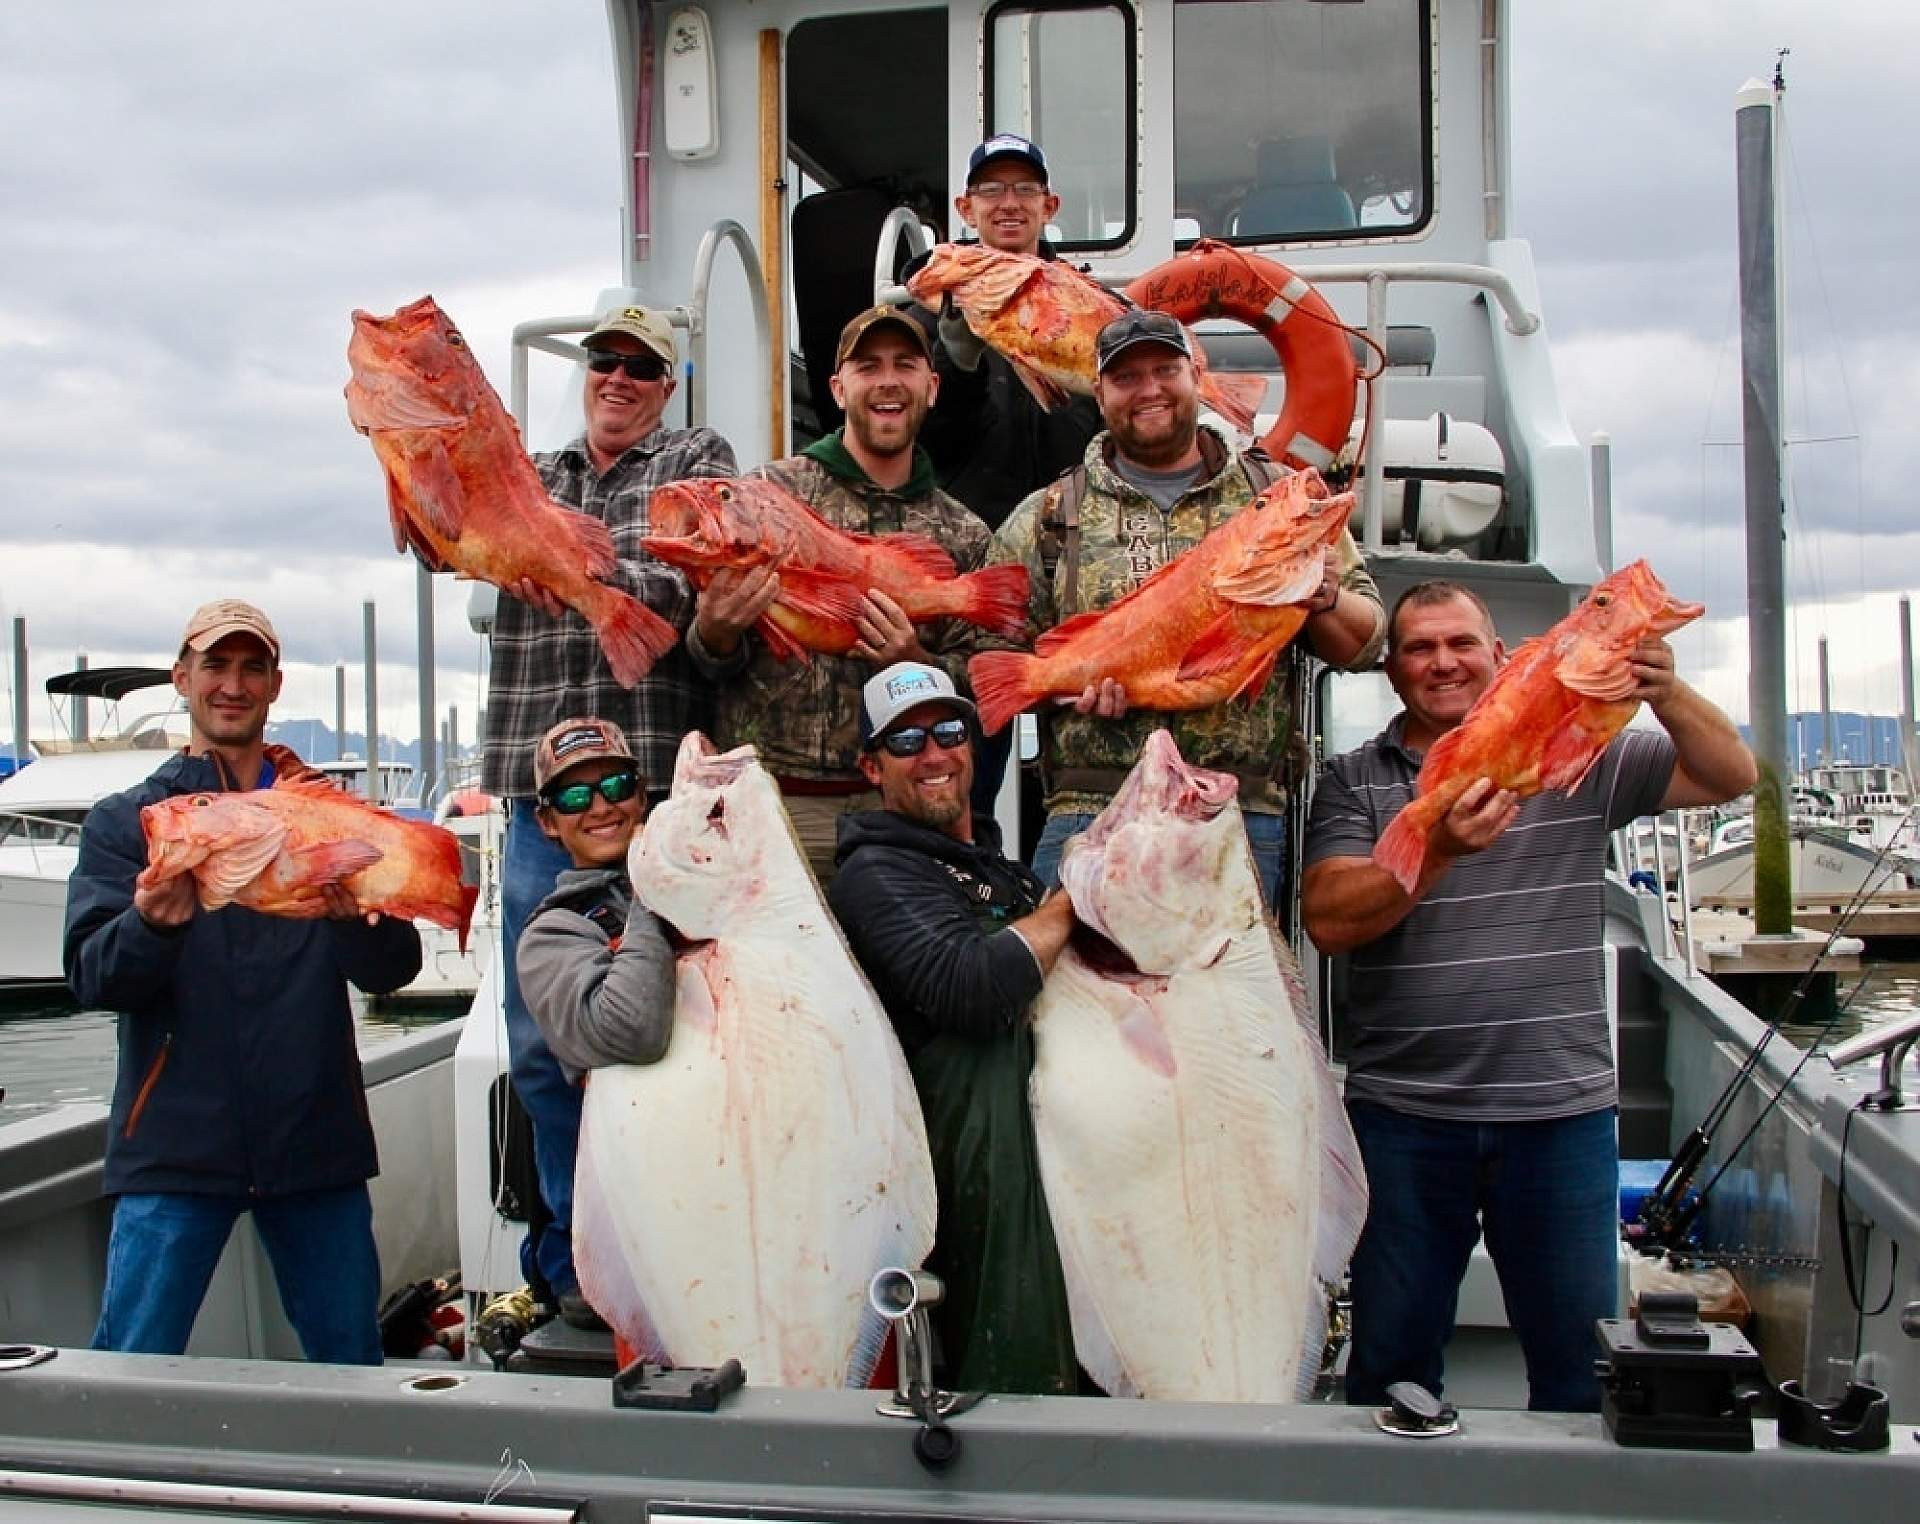 A group of people on a boat hold up fish they've just caught.